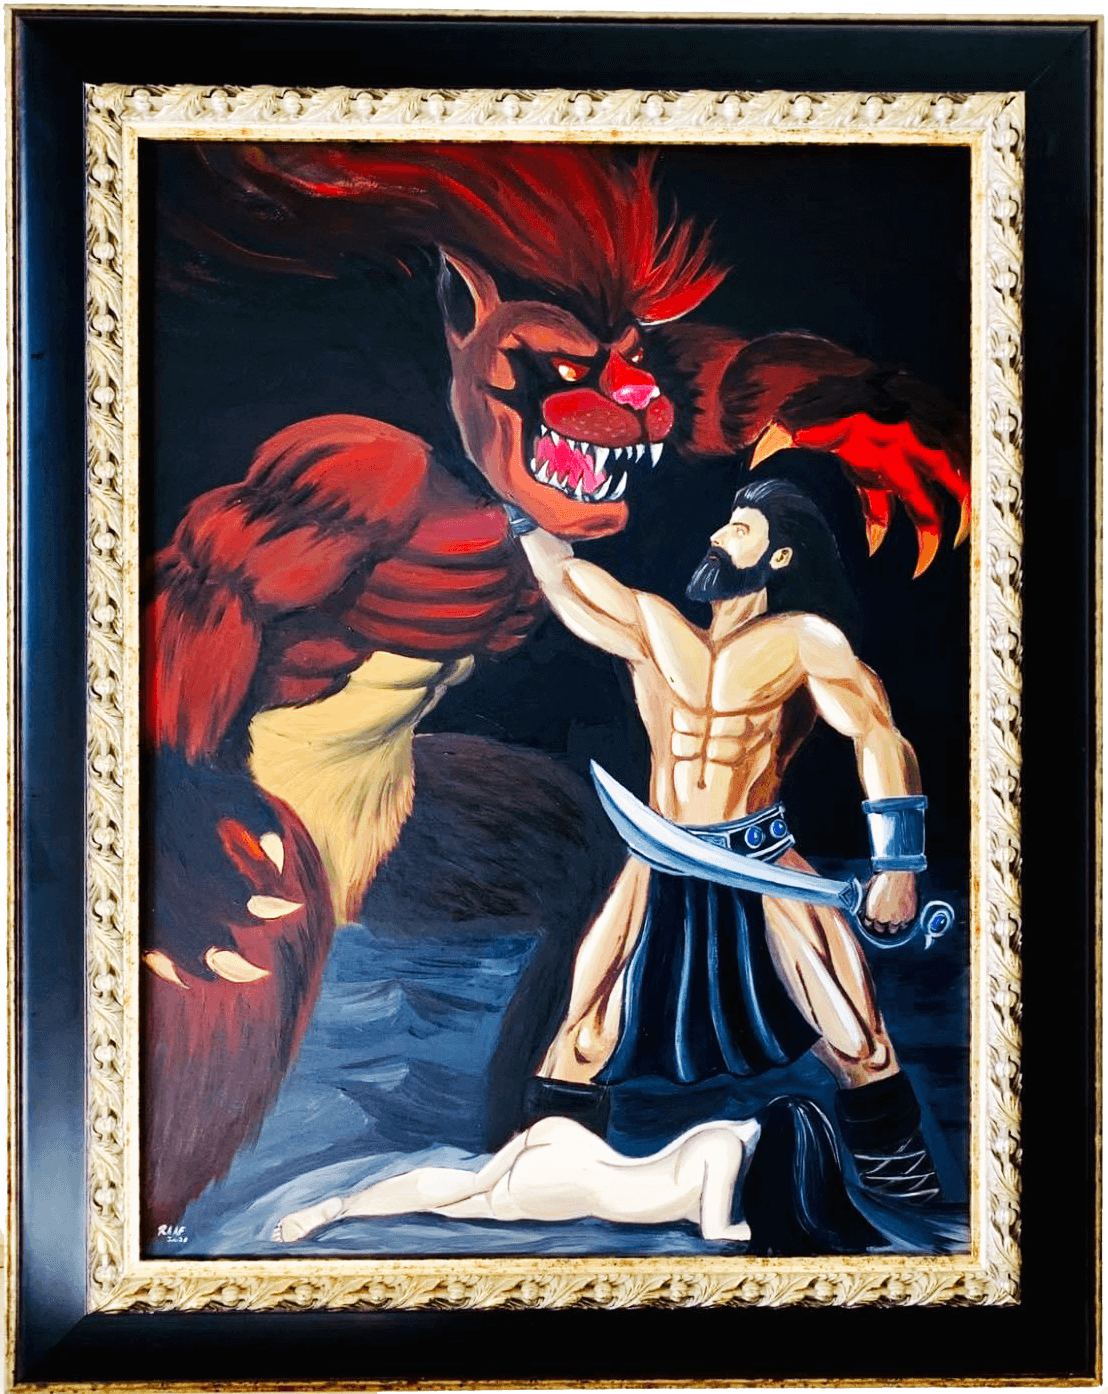 Samson-fights-with-lionmonster-by-raafpaintings